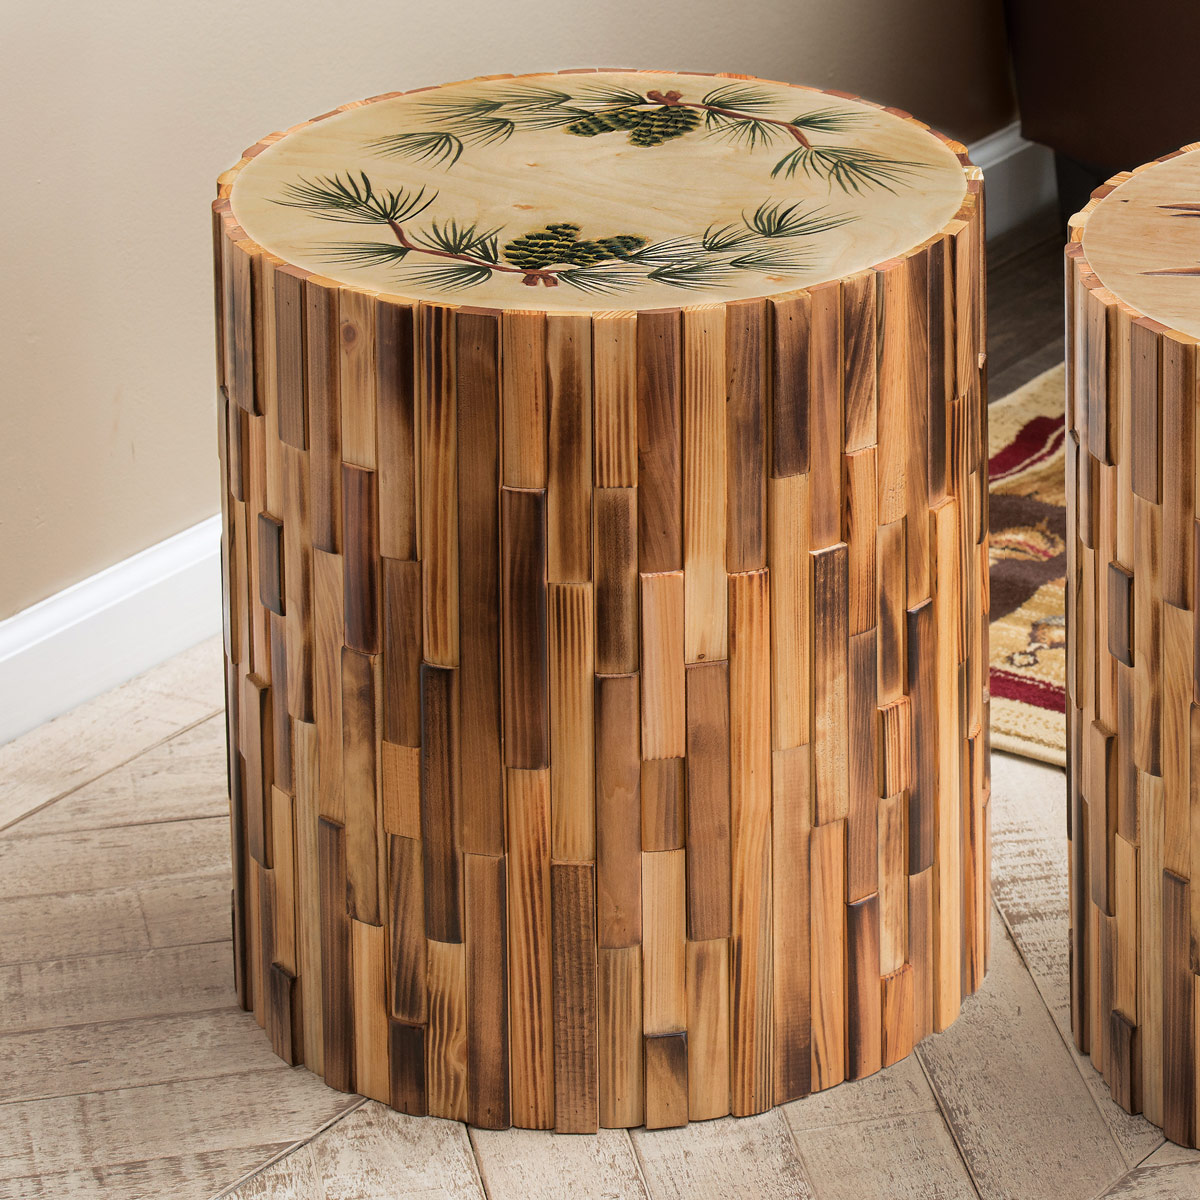 Black Forest Decor Pinecone round wood table